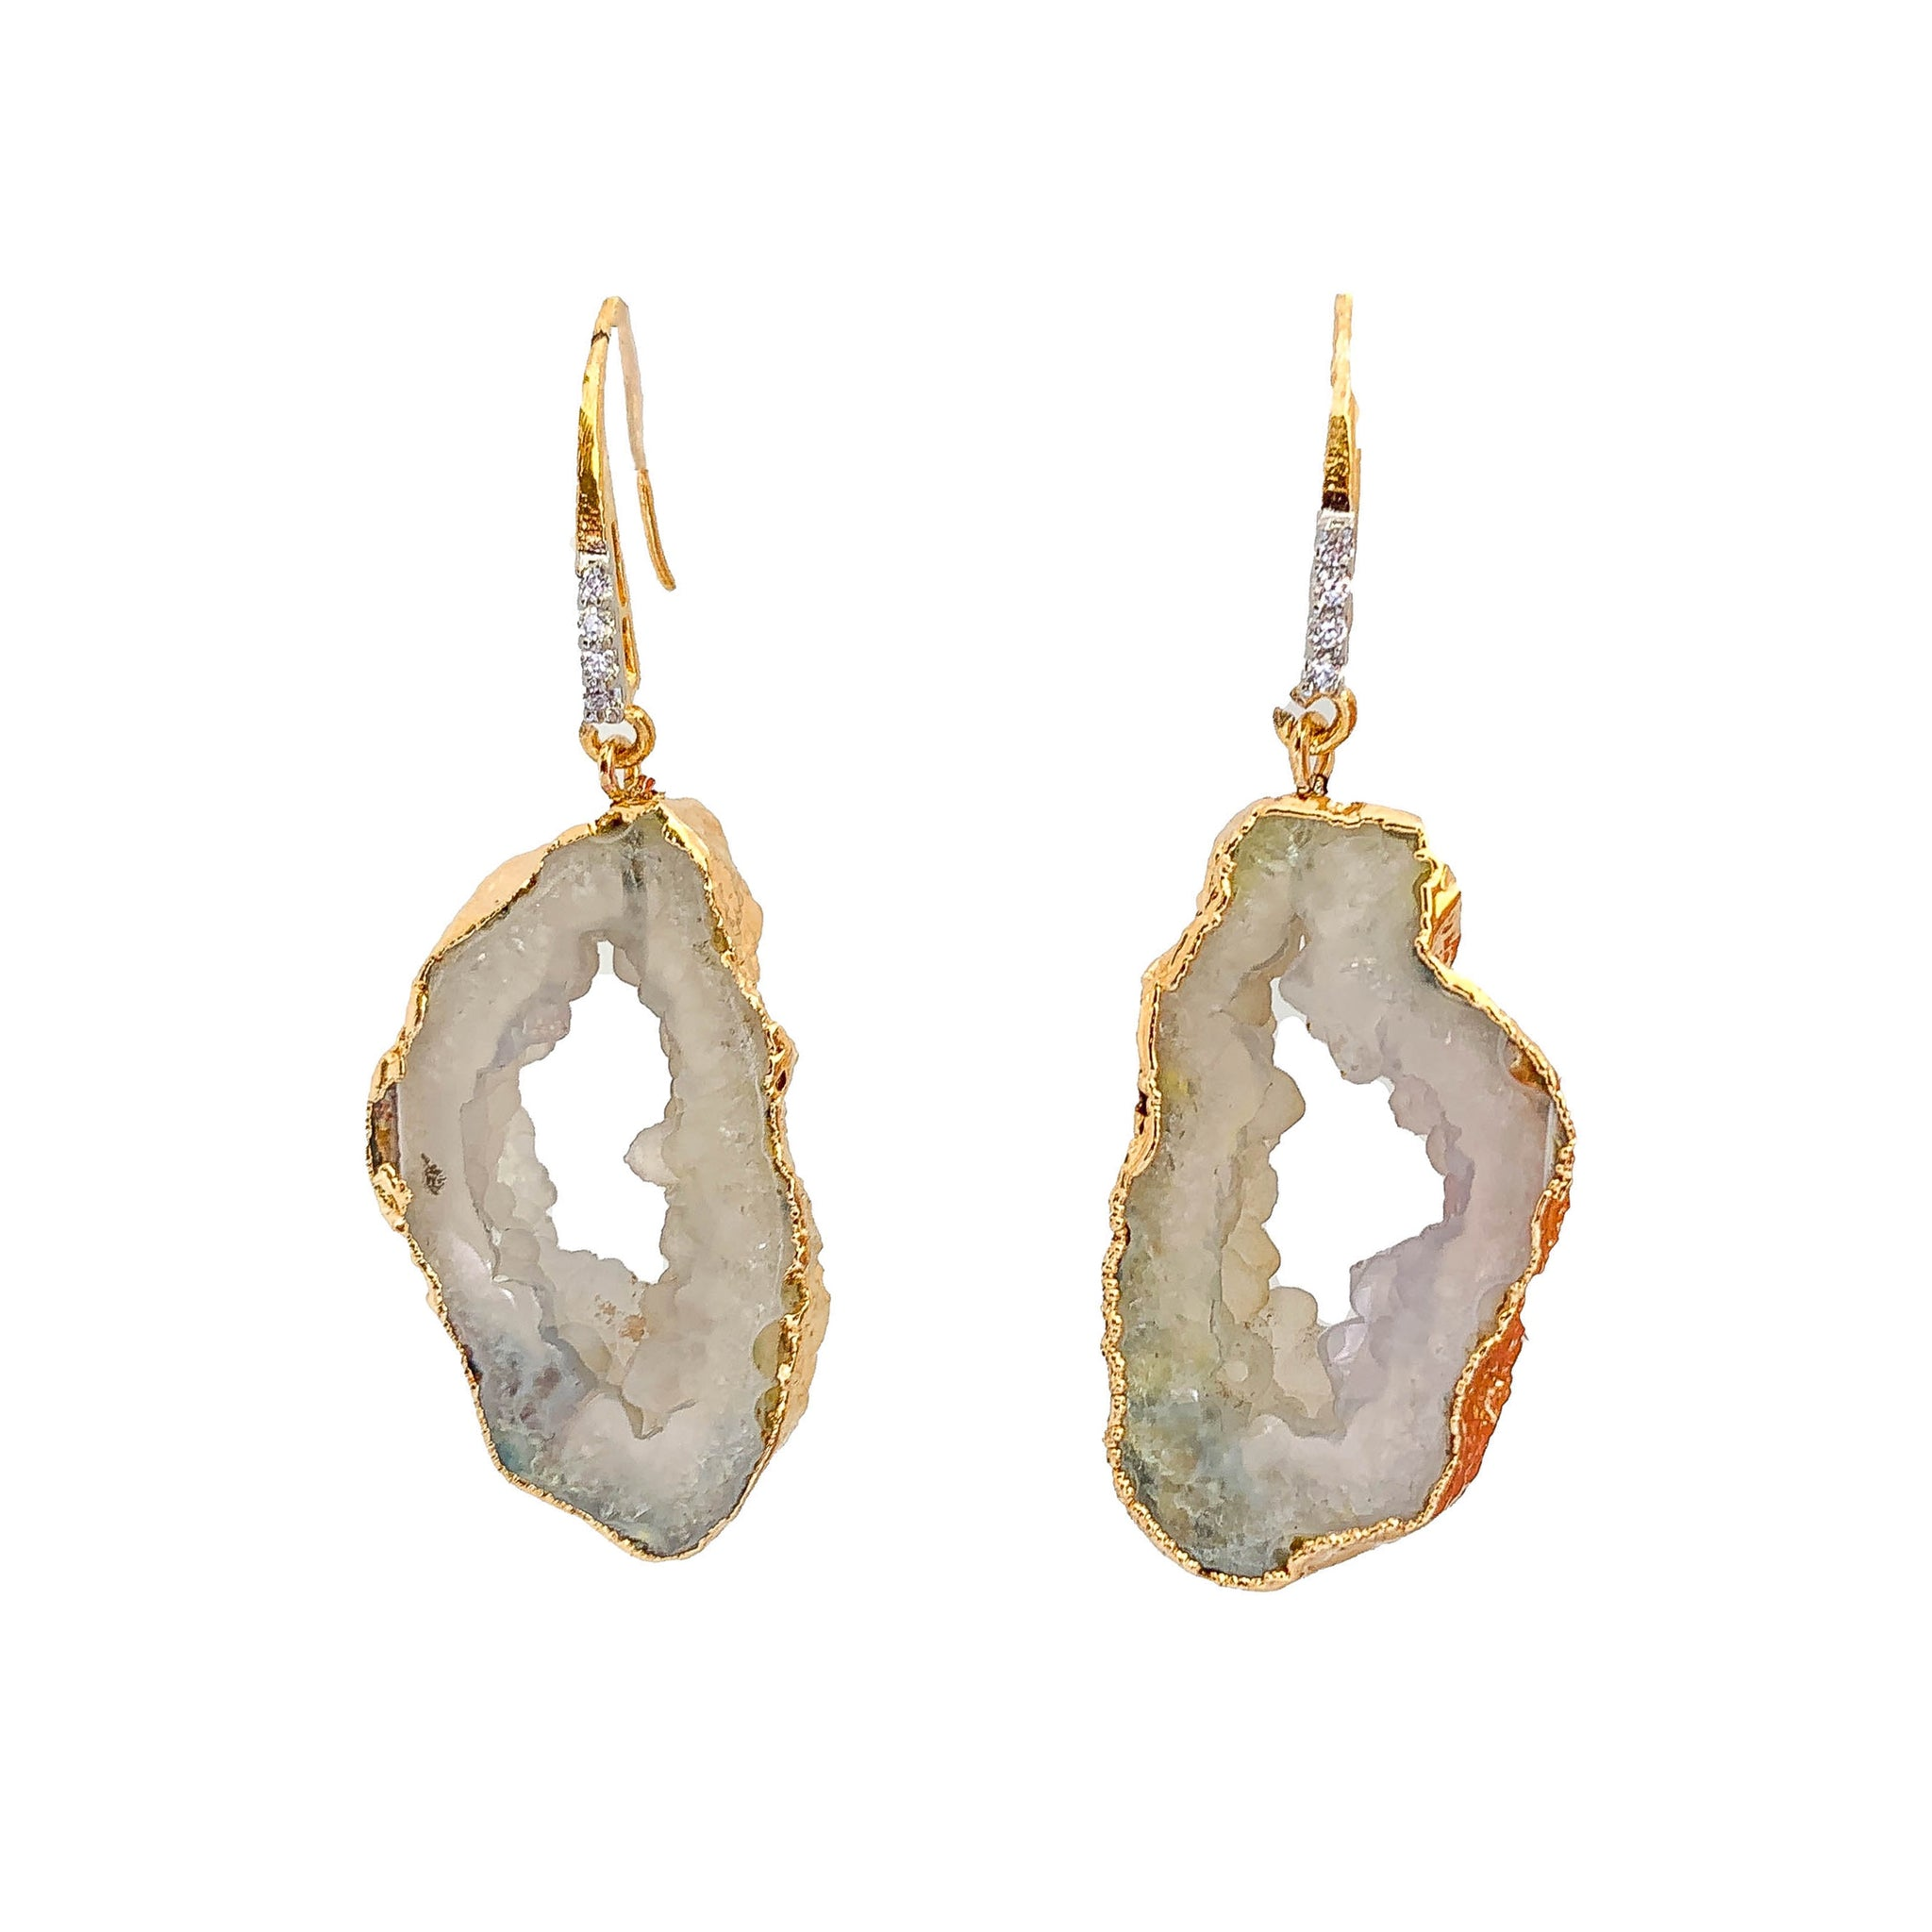 Druzy Earrings  | Women Earrings | Large Earrings by Tanya Litkovska